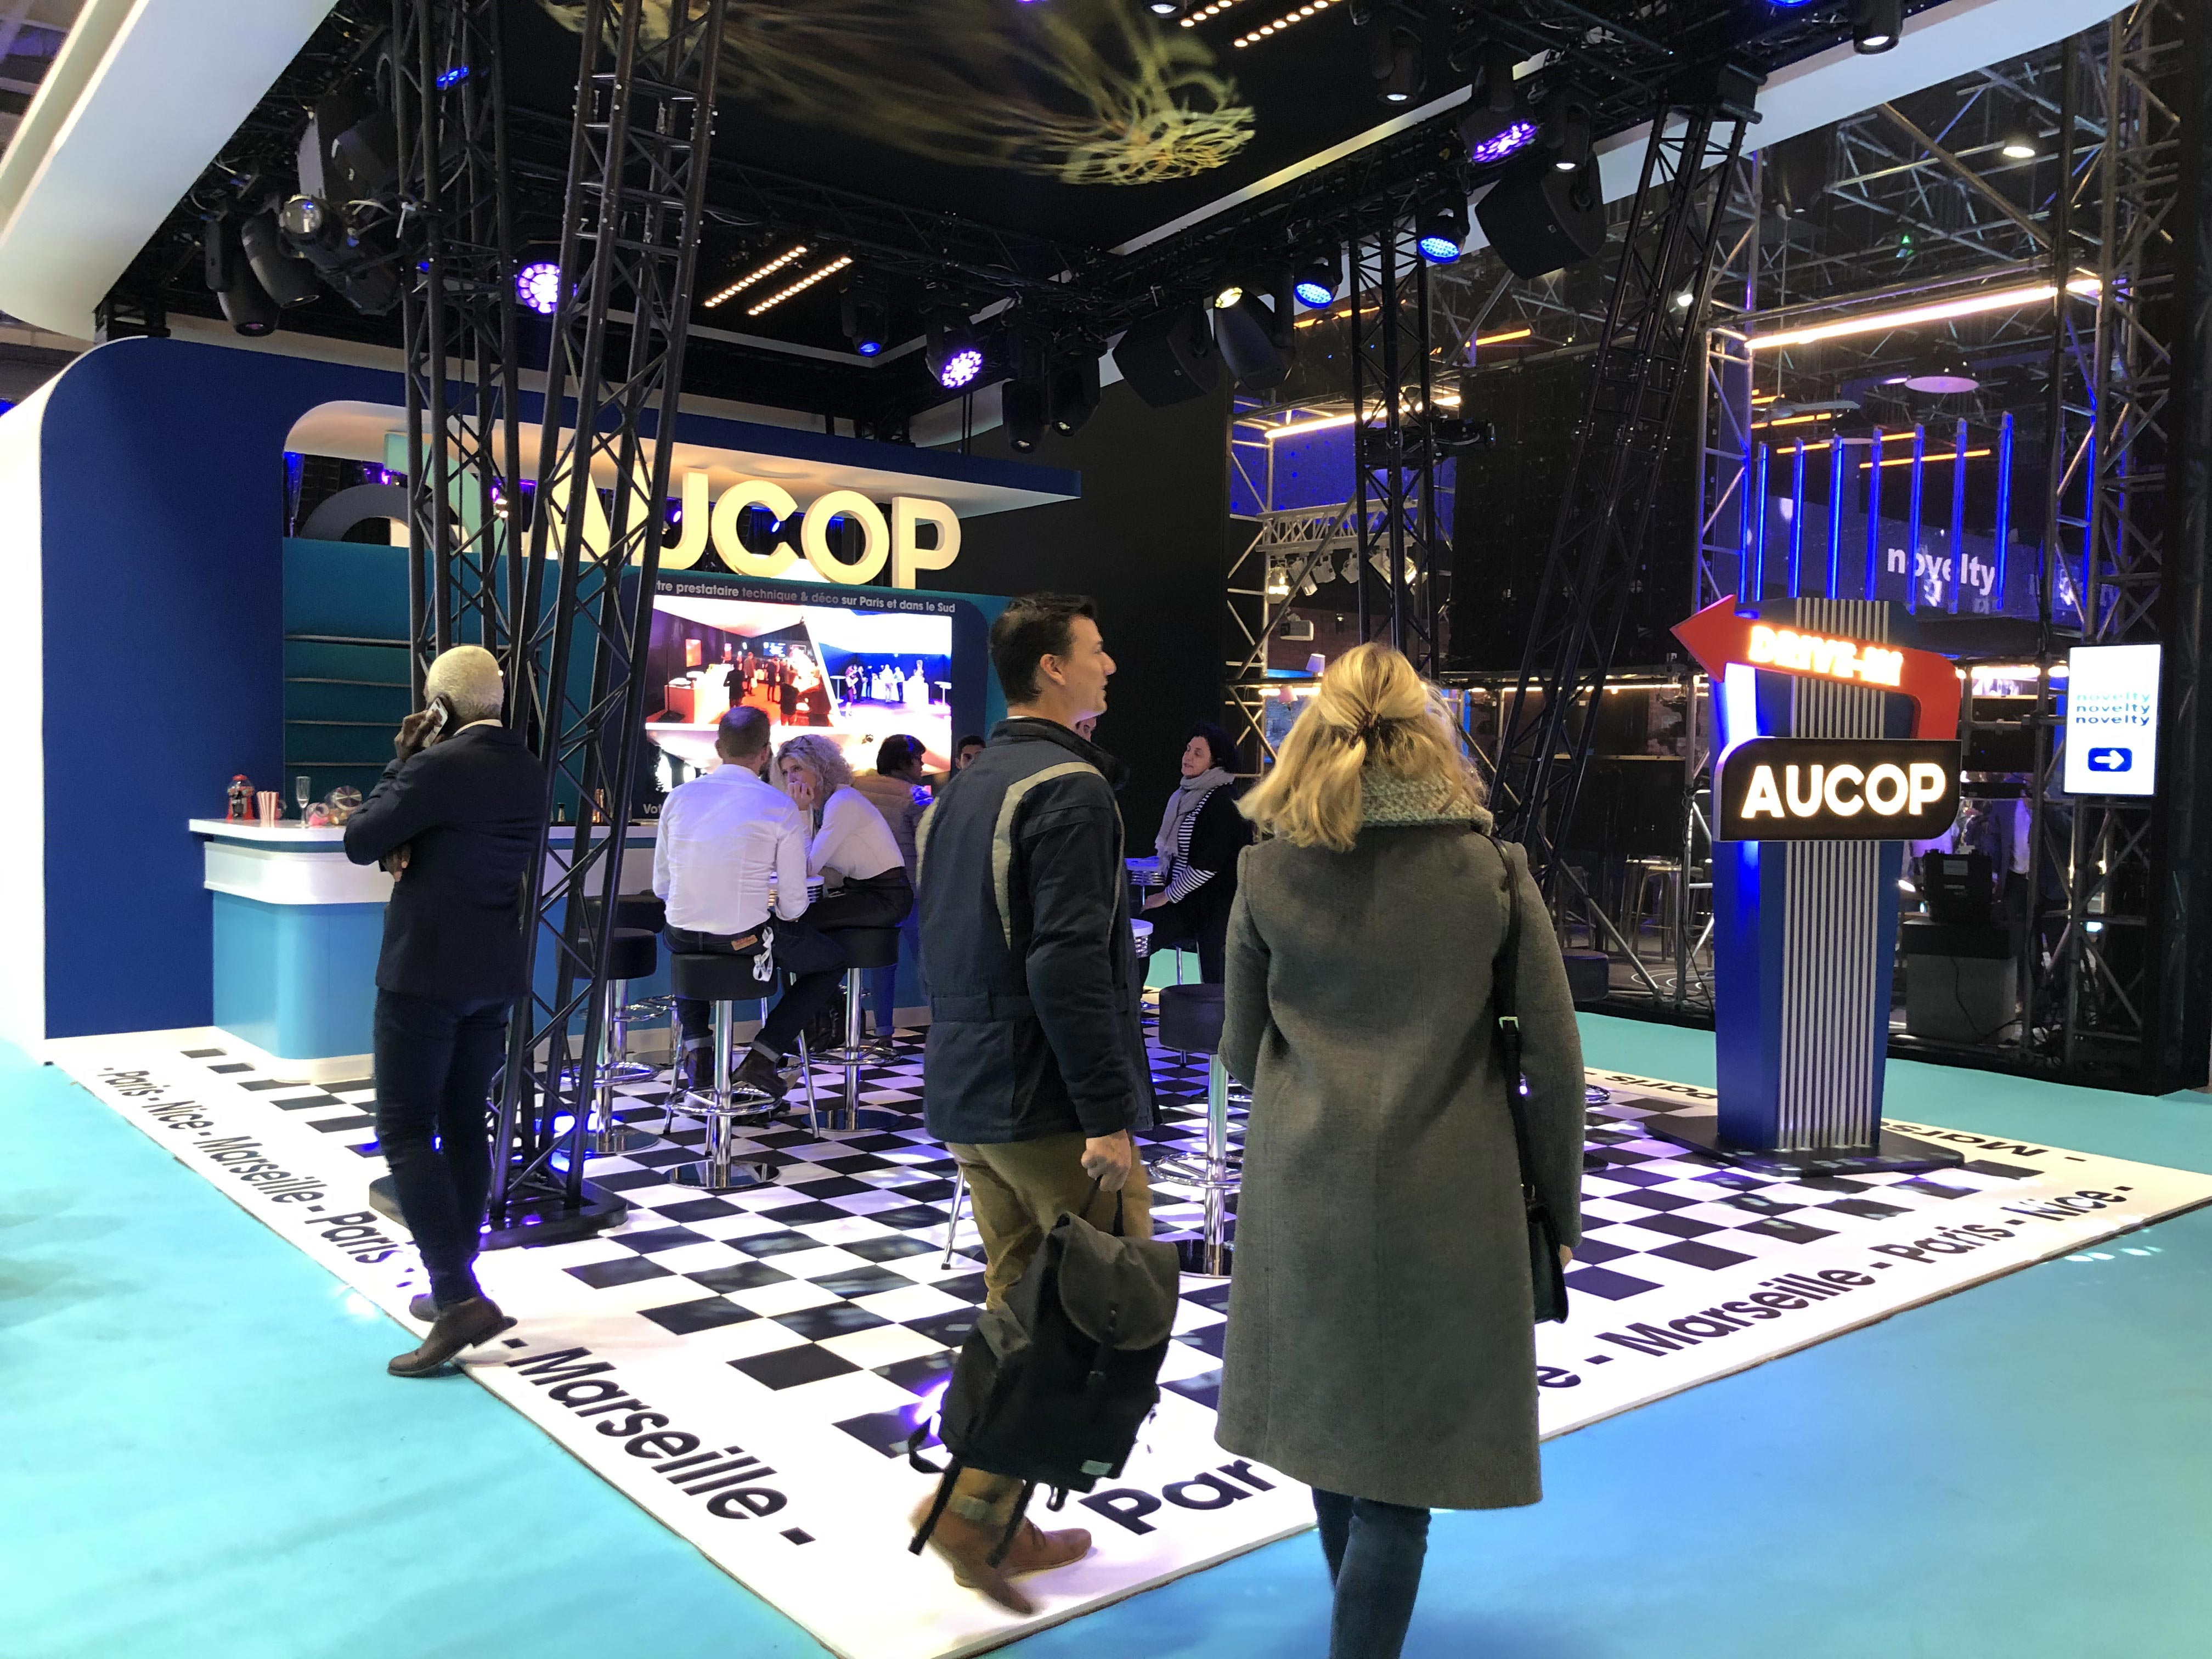 Heavent Paris-NICE-MARSEILLE-PARIS-AUCOP-EVENT PARIS-SALON-EVENT-SONORISATION-ECLAIRAGE-VIDEO-DECORATION-AUDIO-VISIO-CONFERENCE-MOBILIER-SCENIQUE-STRUCTURE-SCENE-TRADUCTION-SIMULTANEE-30-ANS-DE-METIER-HEAVENT